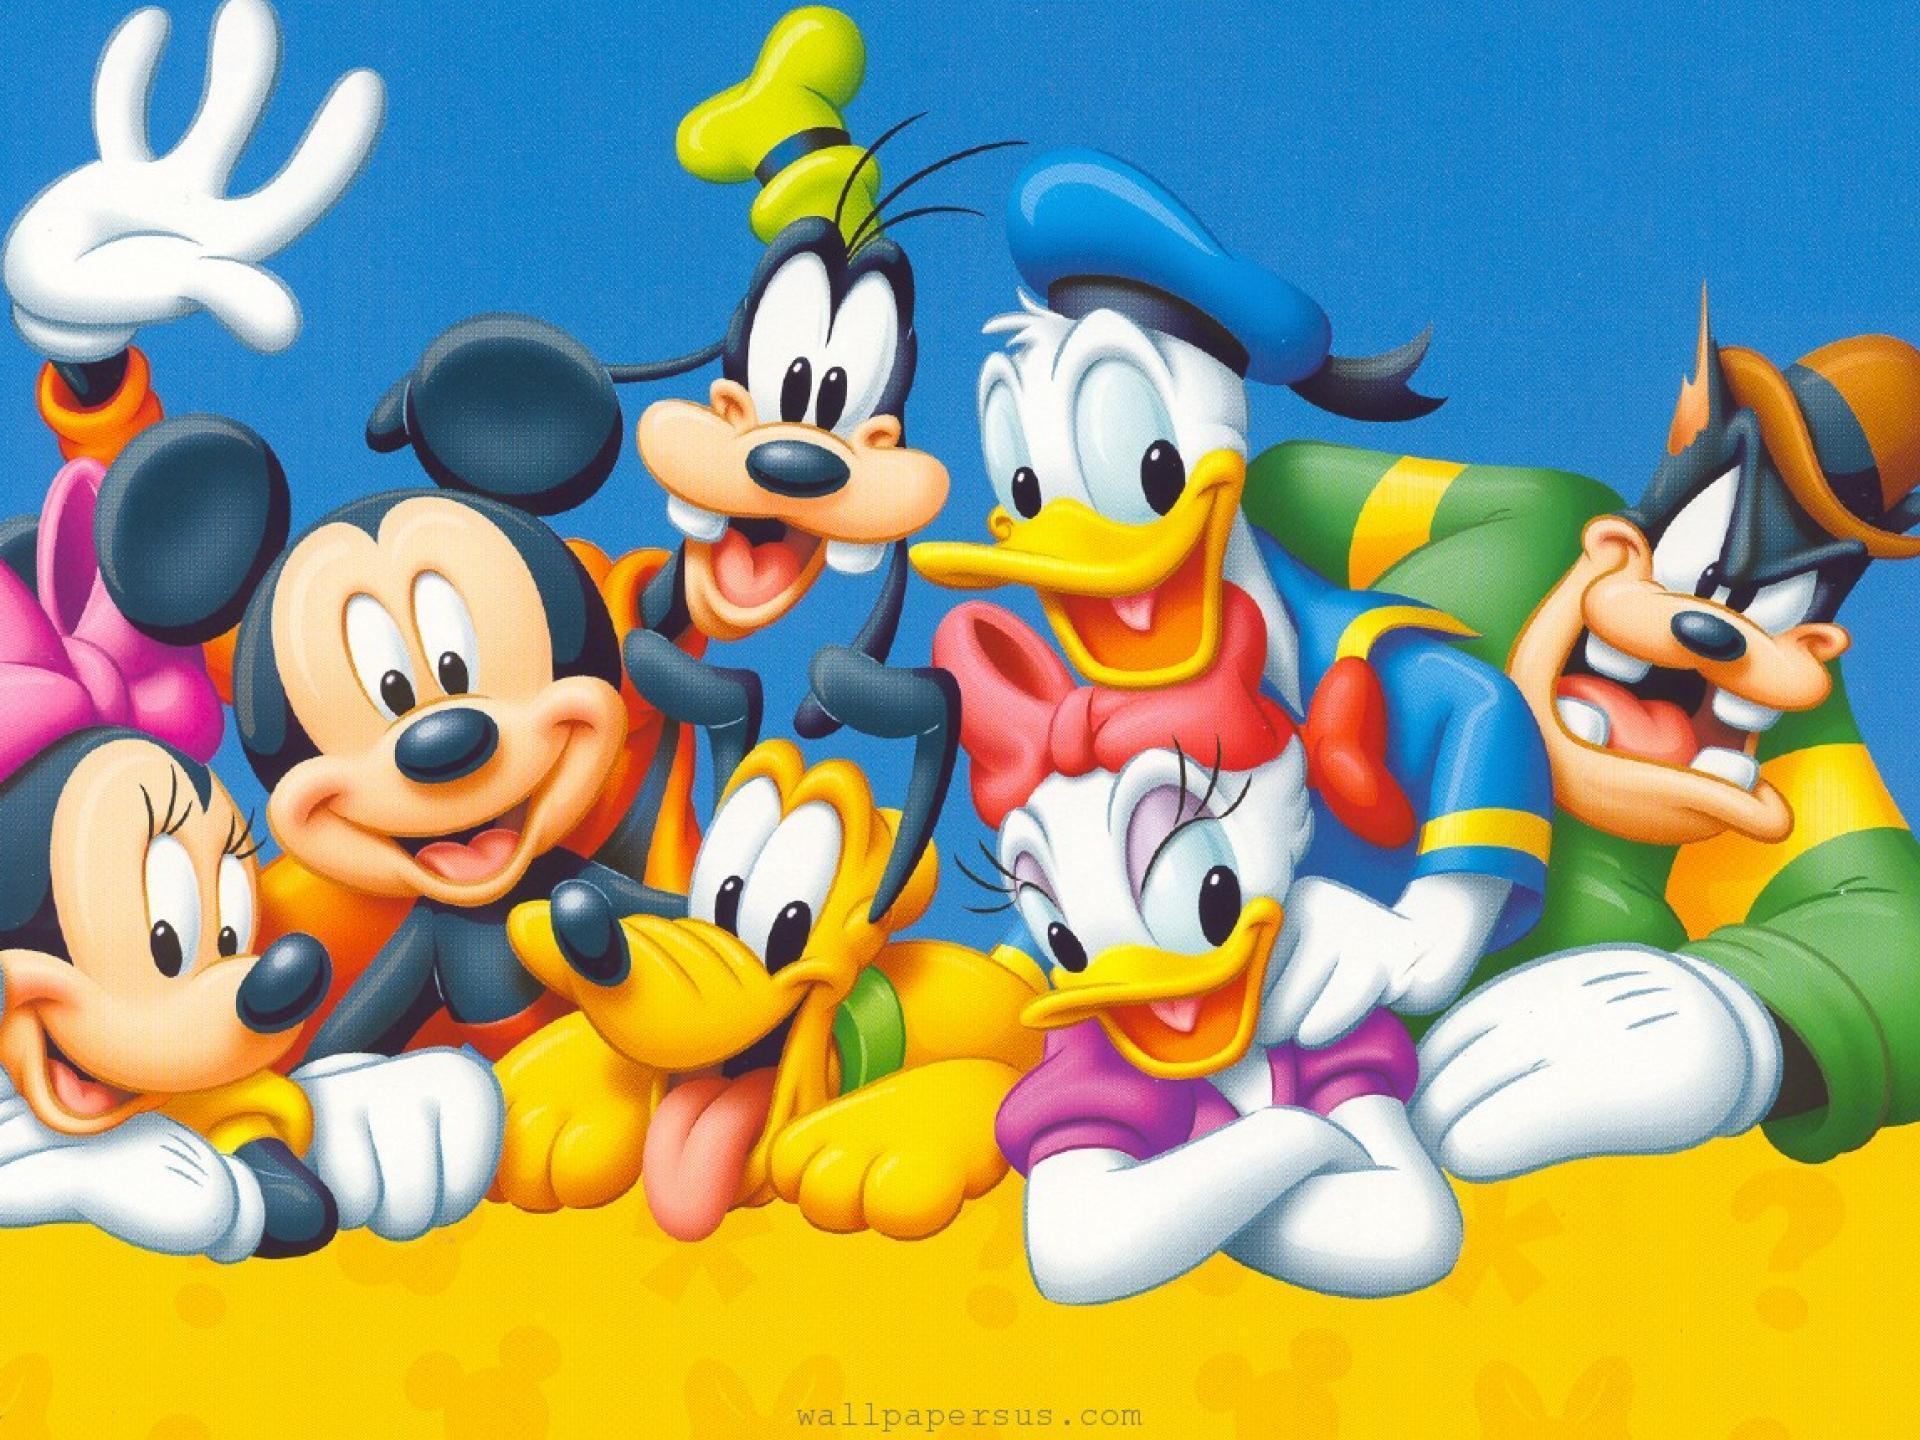 Donald Duck Wallpapers Wallpaper Cave